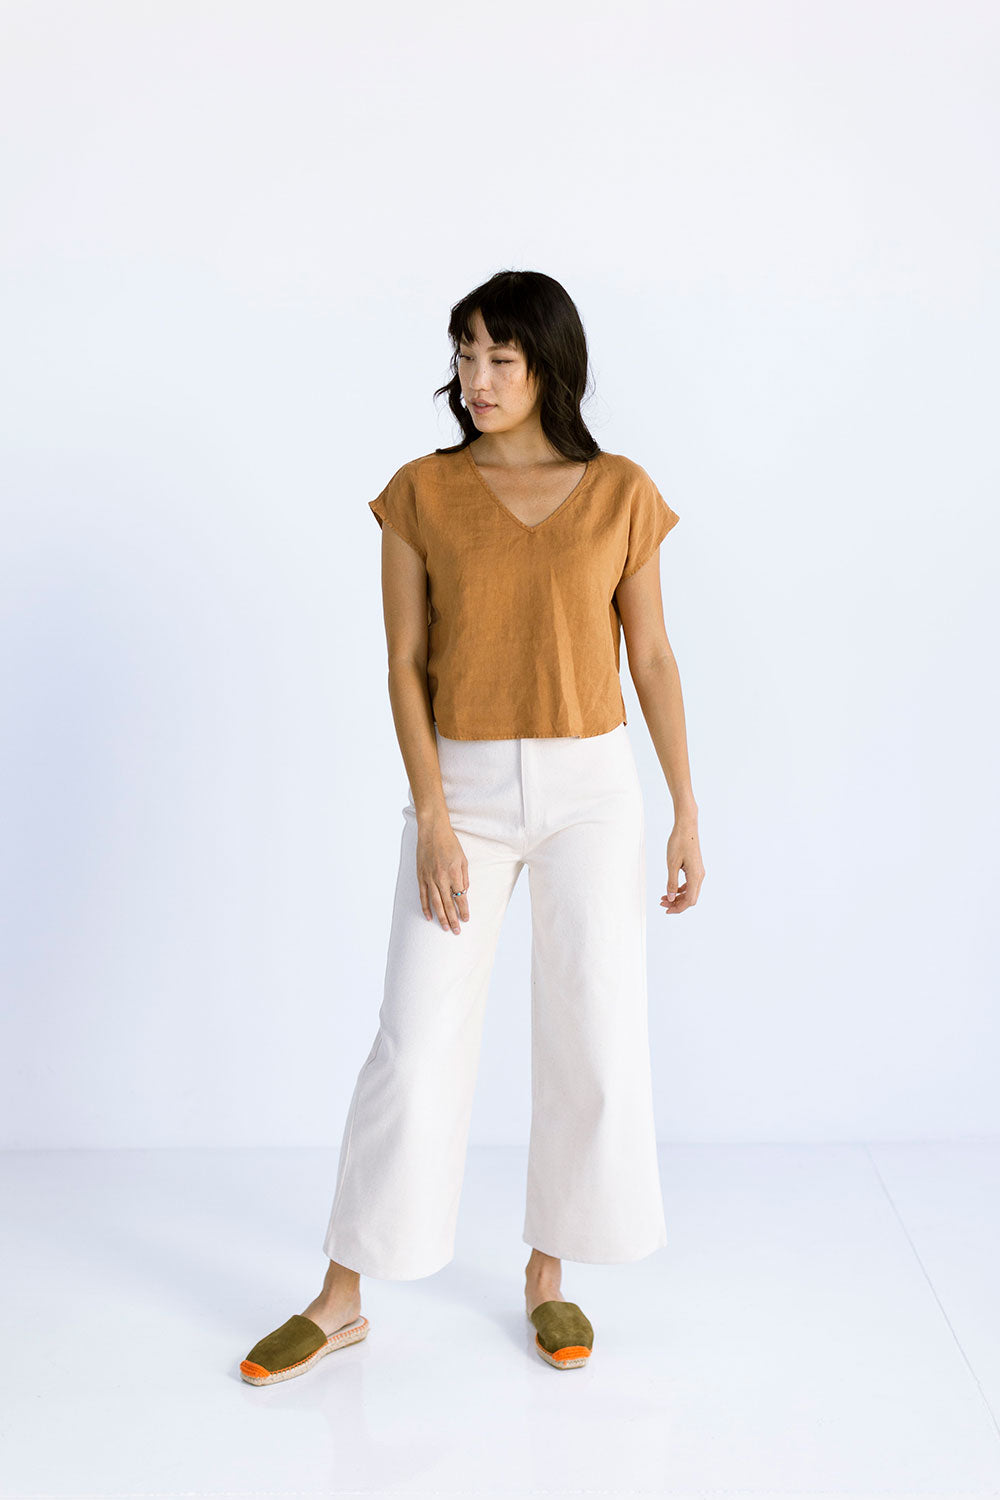 The Linen V Neck in Almond